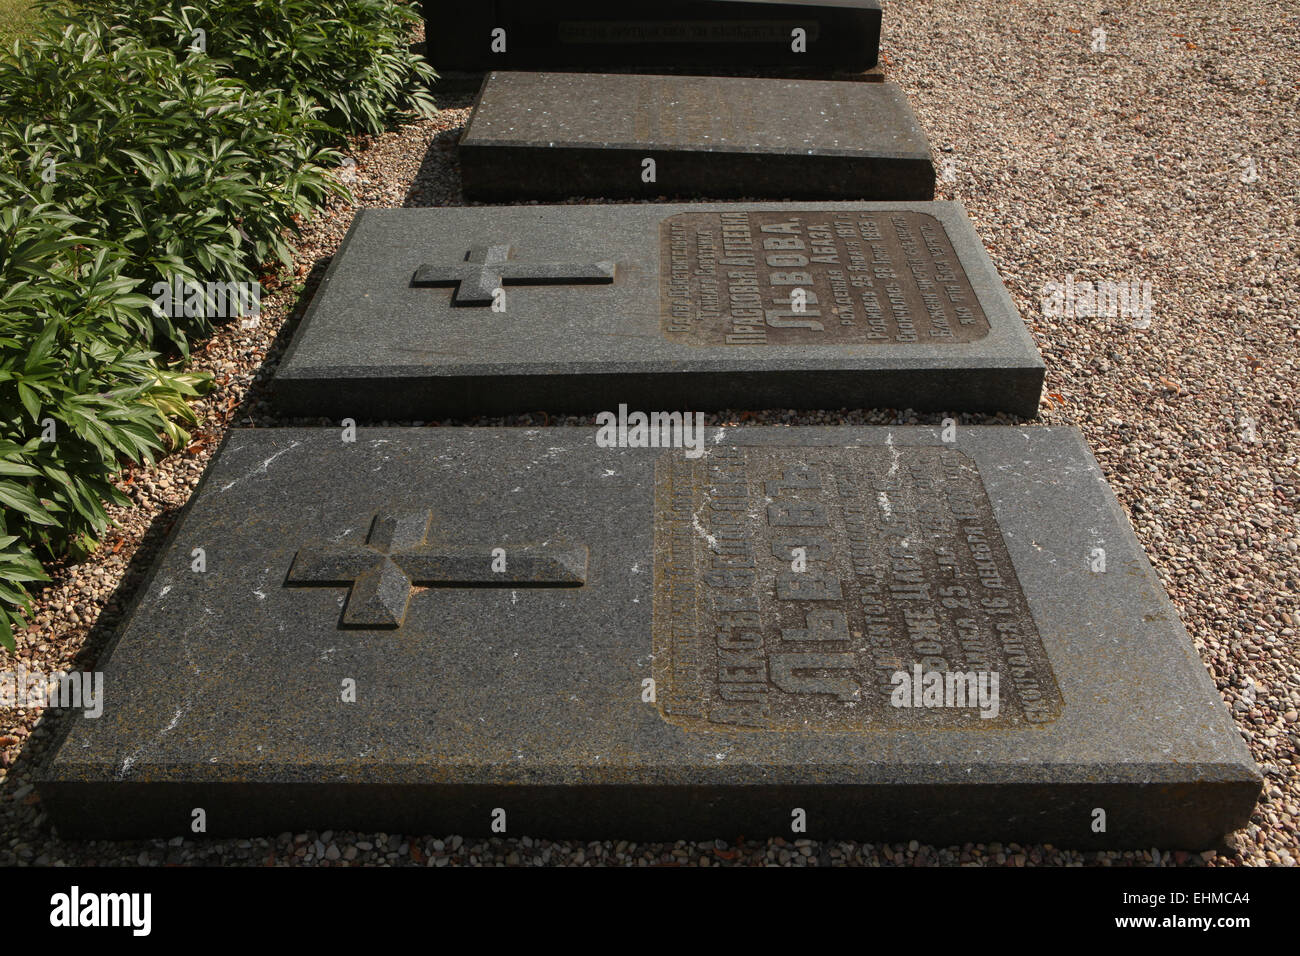 Grave of Russian composer Alexei Lvov and his wife Praskovya Lvova in the Pazaislis monastery in Kaunas, Lithuania. - Stock Image